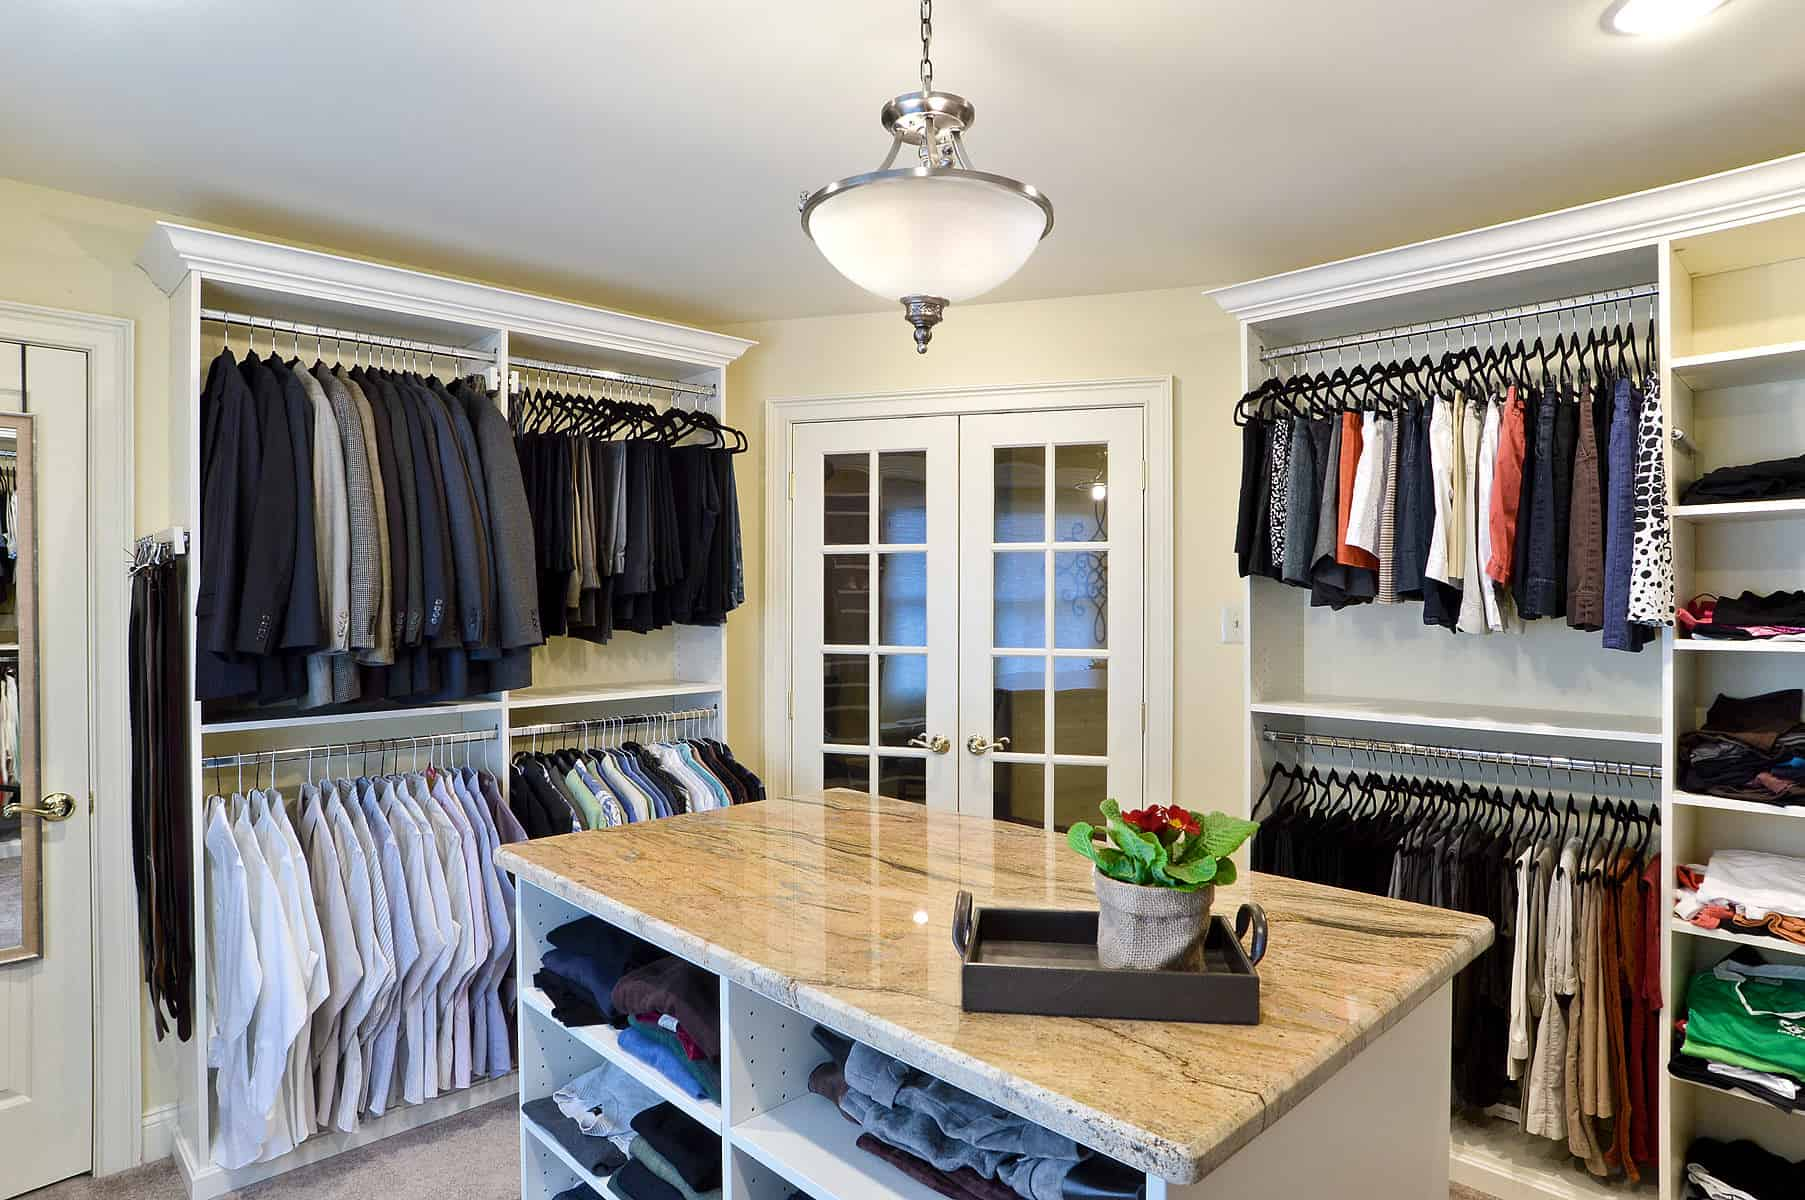 This walk-in closet design embraces open-storage in every possible manner. The island provides extra storage space for folded clothes while there are plenty of hangers to hold all the ironed shirts.